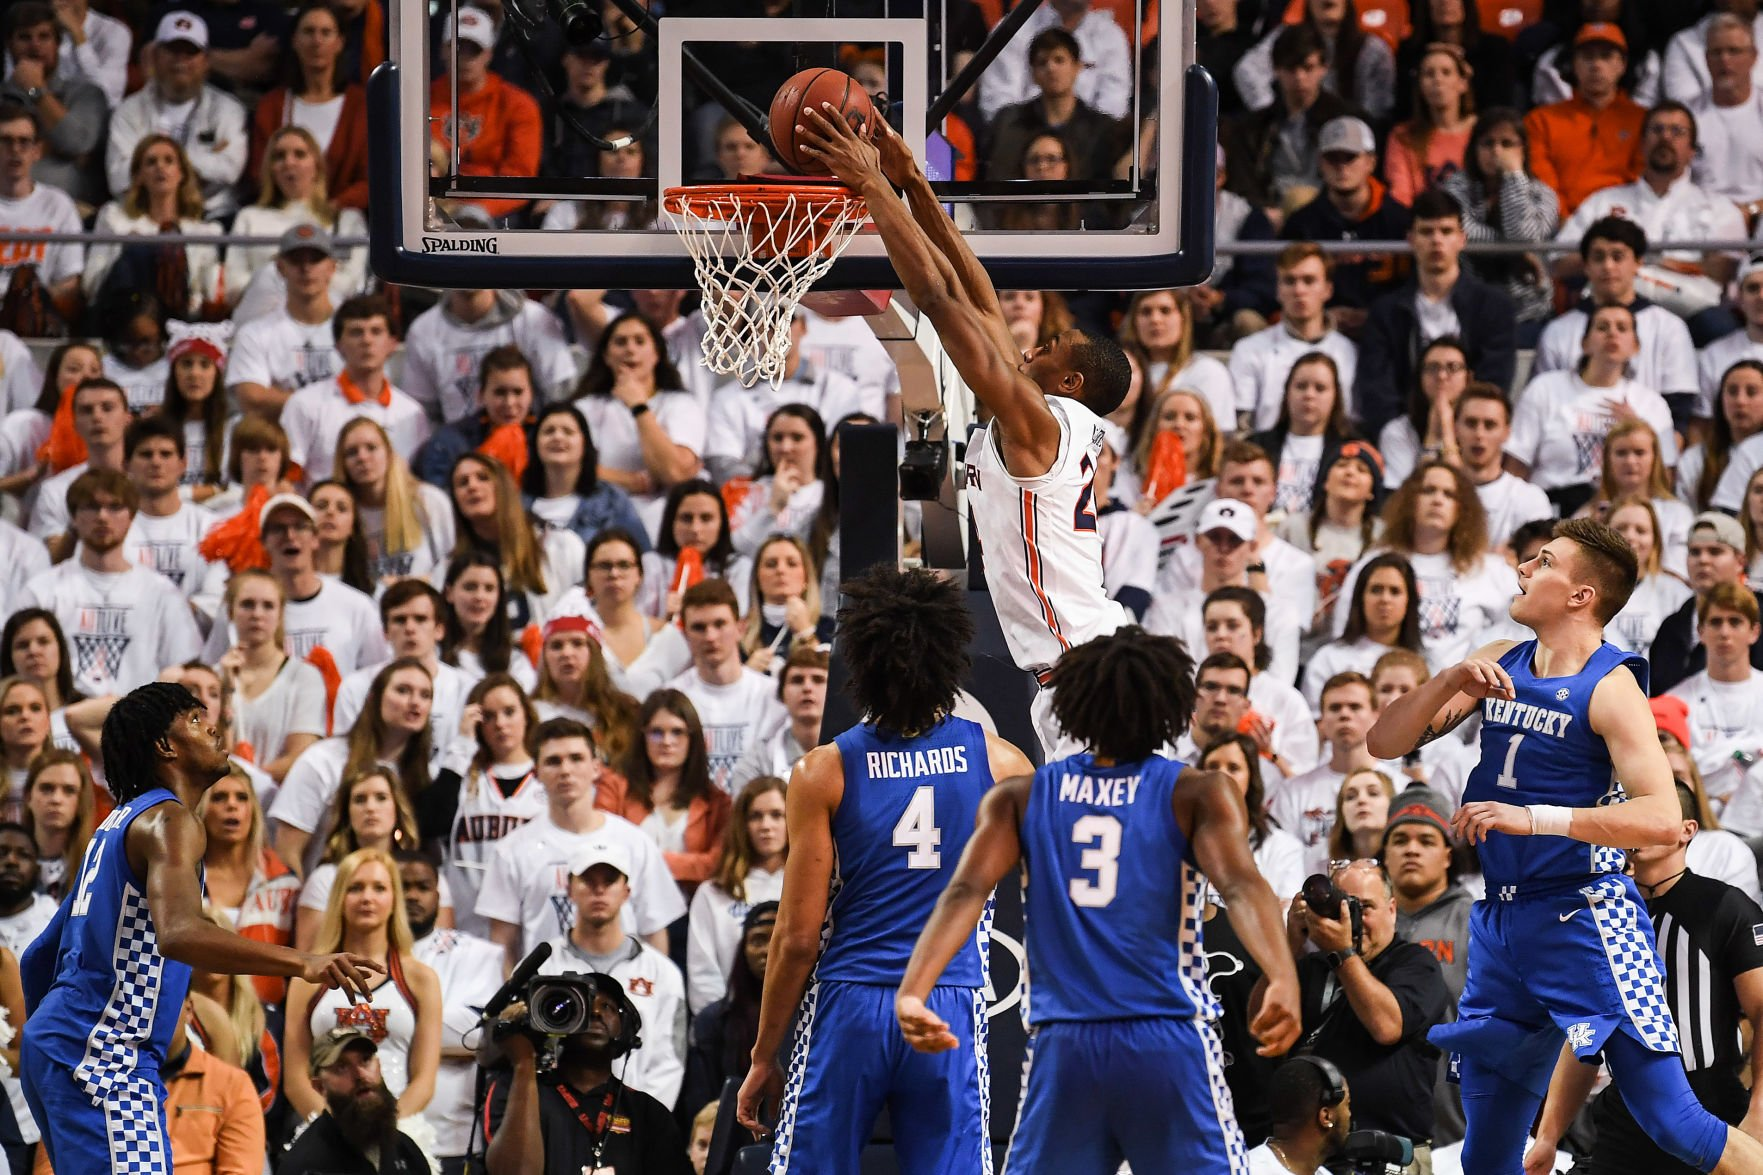 albanyherald.com - Shanna Lockwood/Auburn Athletics - Men's Basketball: Auburn vs Kentucky